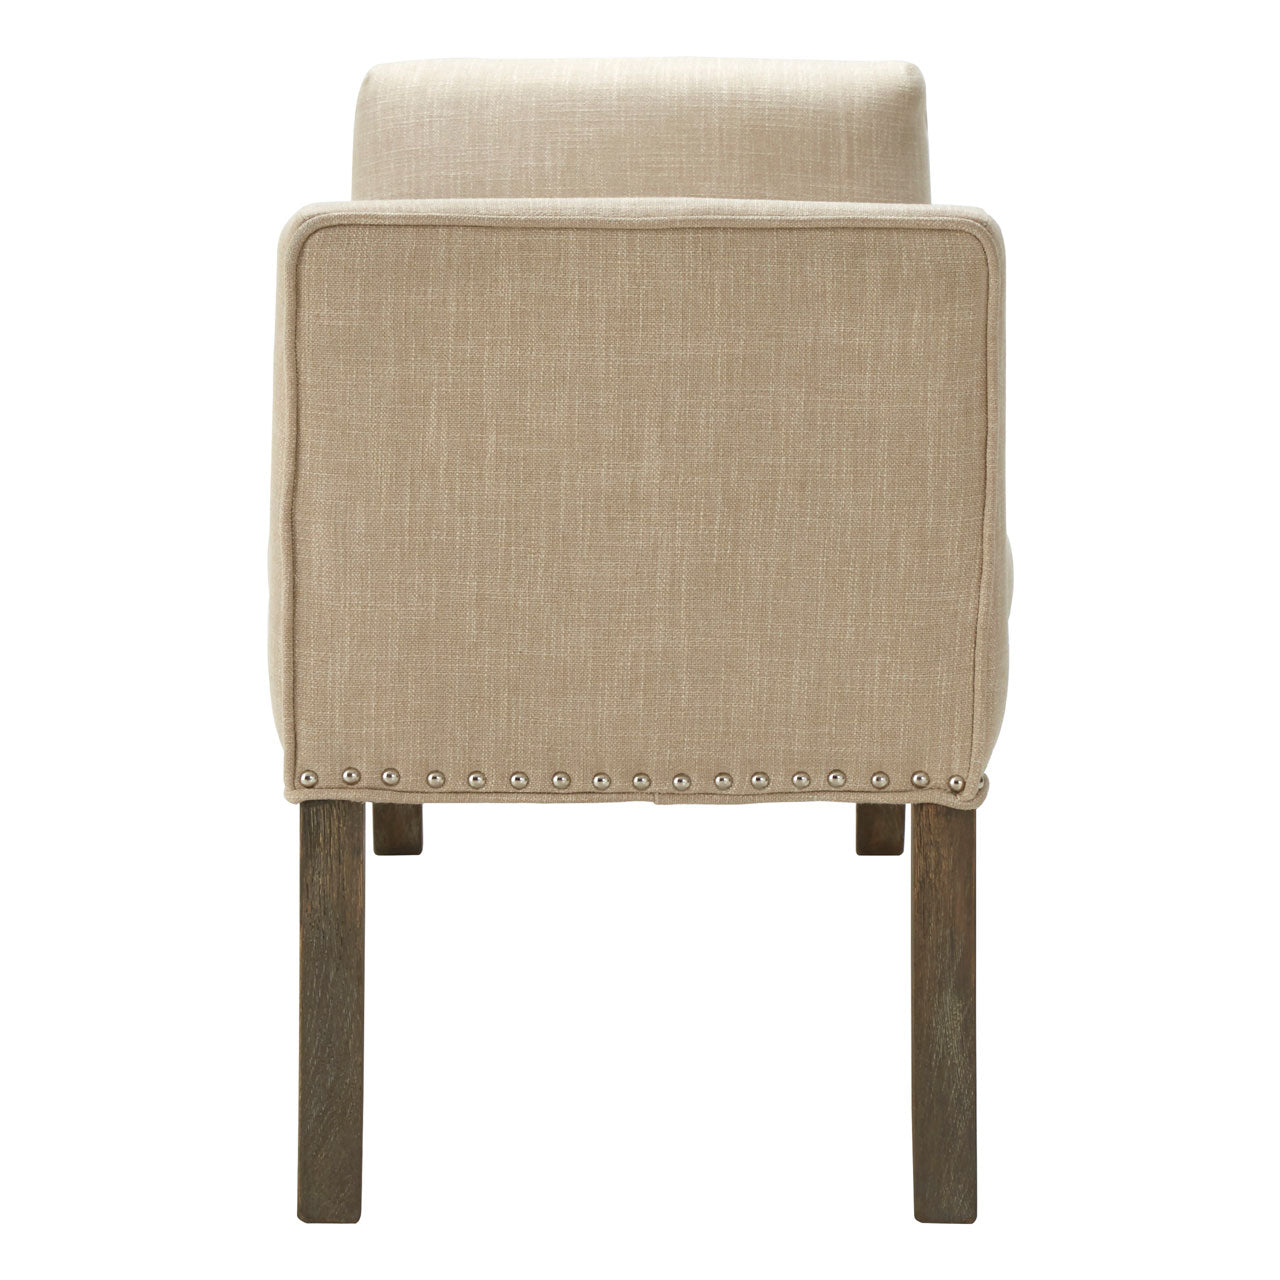 Kensington Townhouse Bench Beige